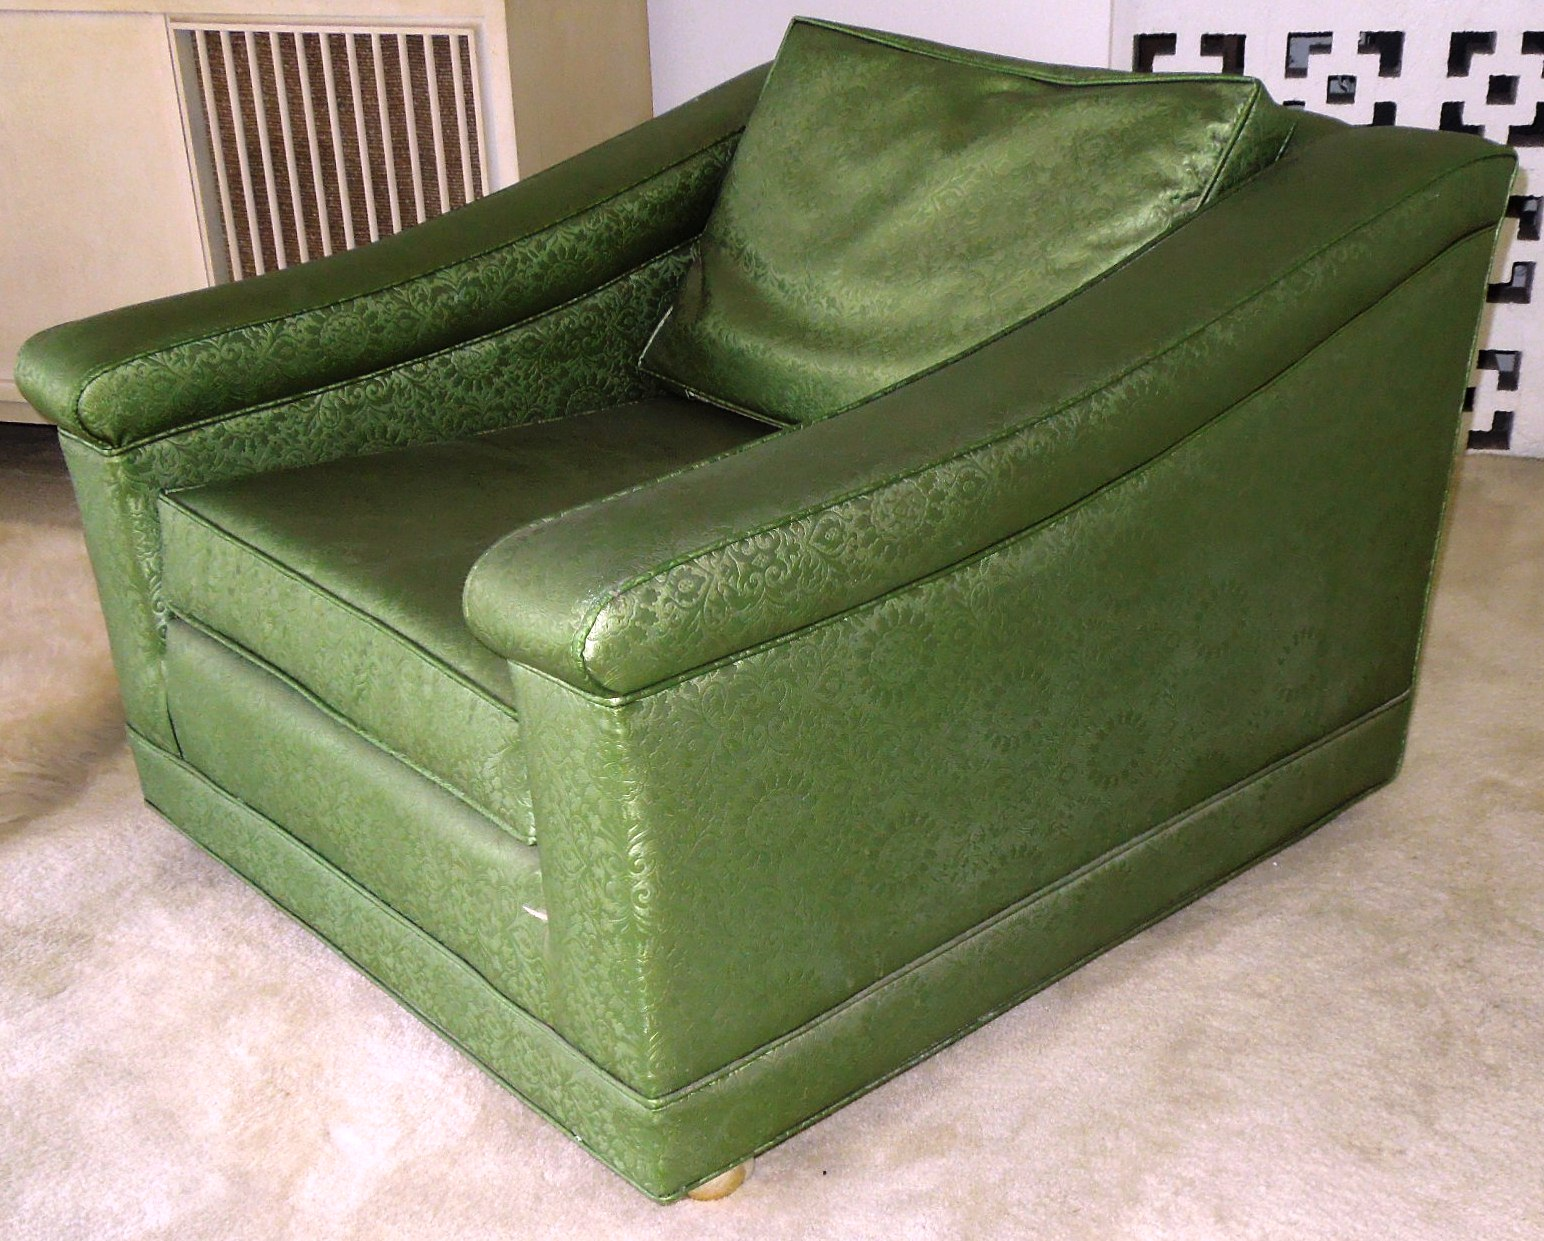 Vintage 1960s luxury lounge chair vinyl green color for for Retro 80s furniture